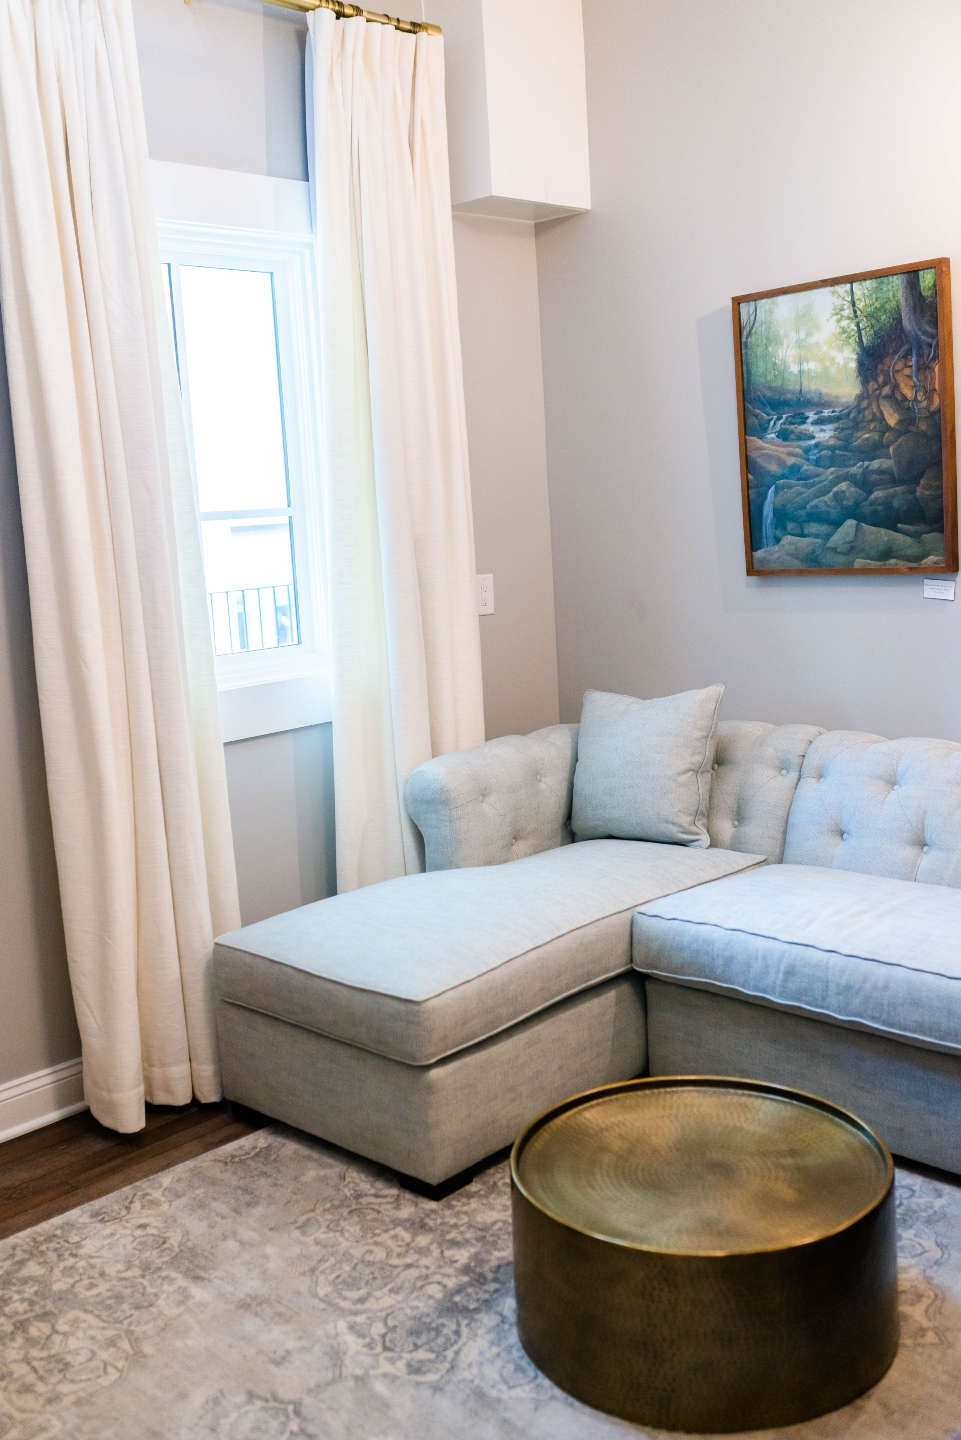 Places to Stay: The Colonial Inn in Hillsborough NC - I'm Fixin' To - @imfixintoblog |The Colonial Inn Hillsborough NC by popular NC travel blog, I'm Fixin' To: image of a grey sectional couch and round gold coffee table next to a window with white drapes.